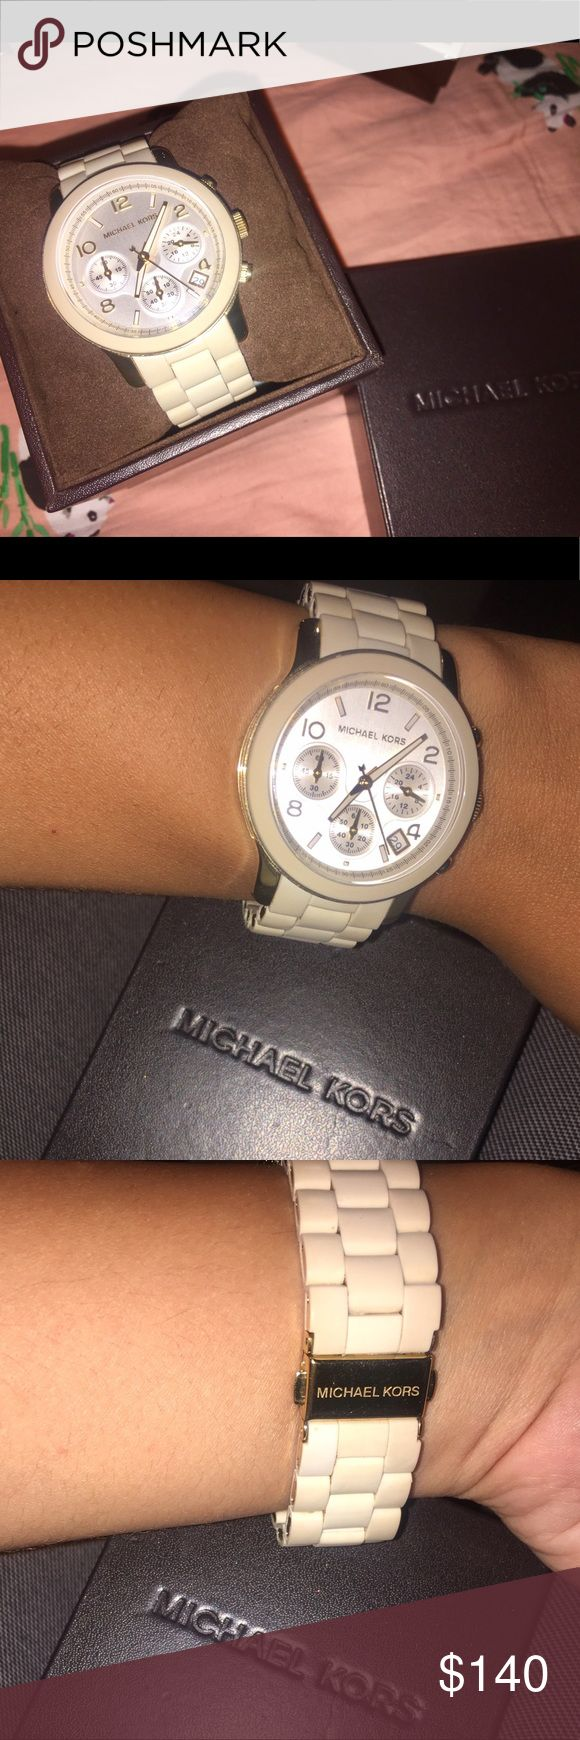 Michael Kors Watch Cute gold and off white Michael Kors watch. Only worn a handful of times. Comes in original box. Needs new battery. Make me an offer! Michael Kors Accessories Watches